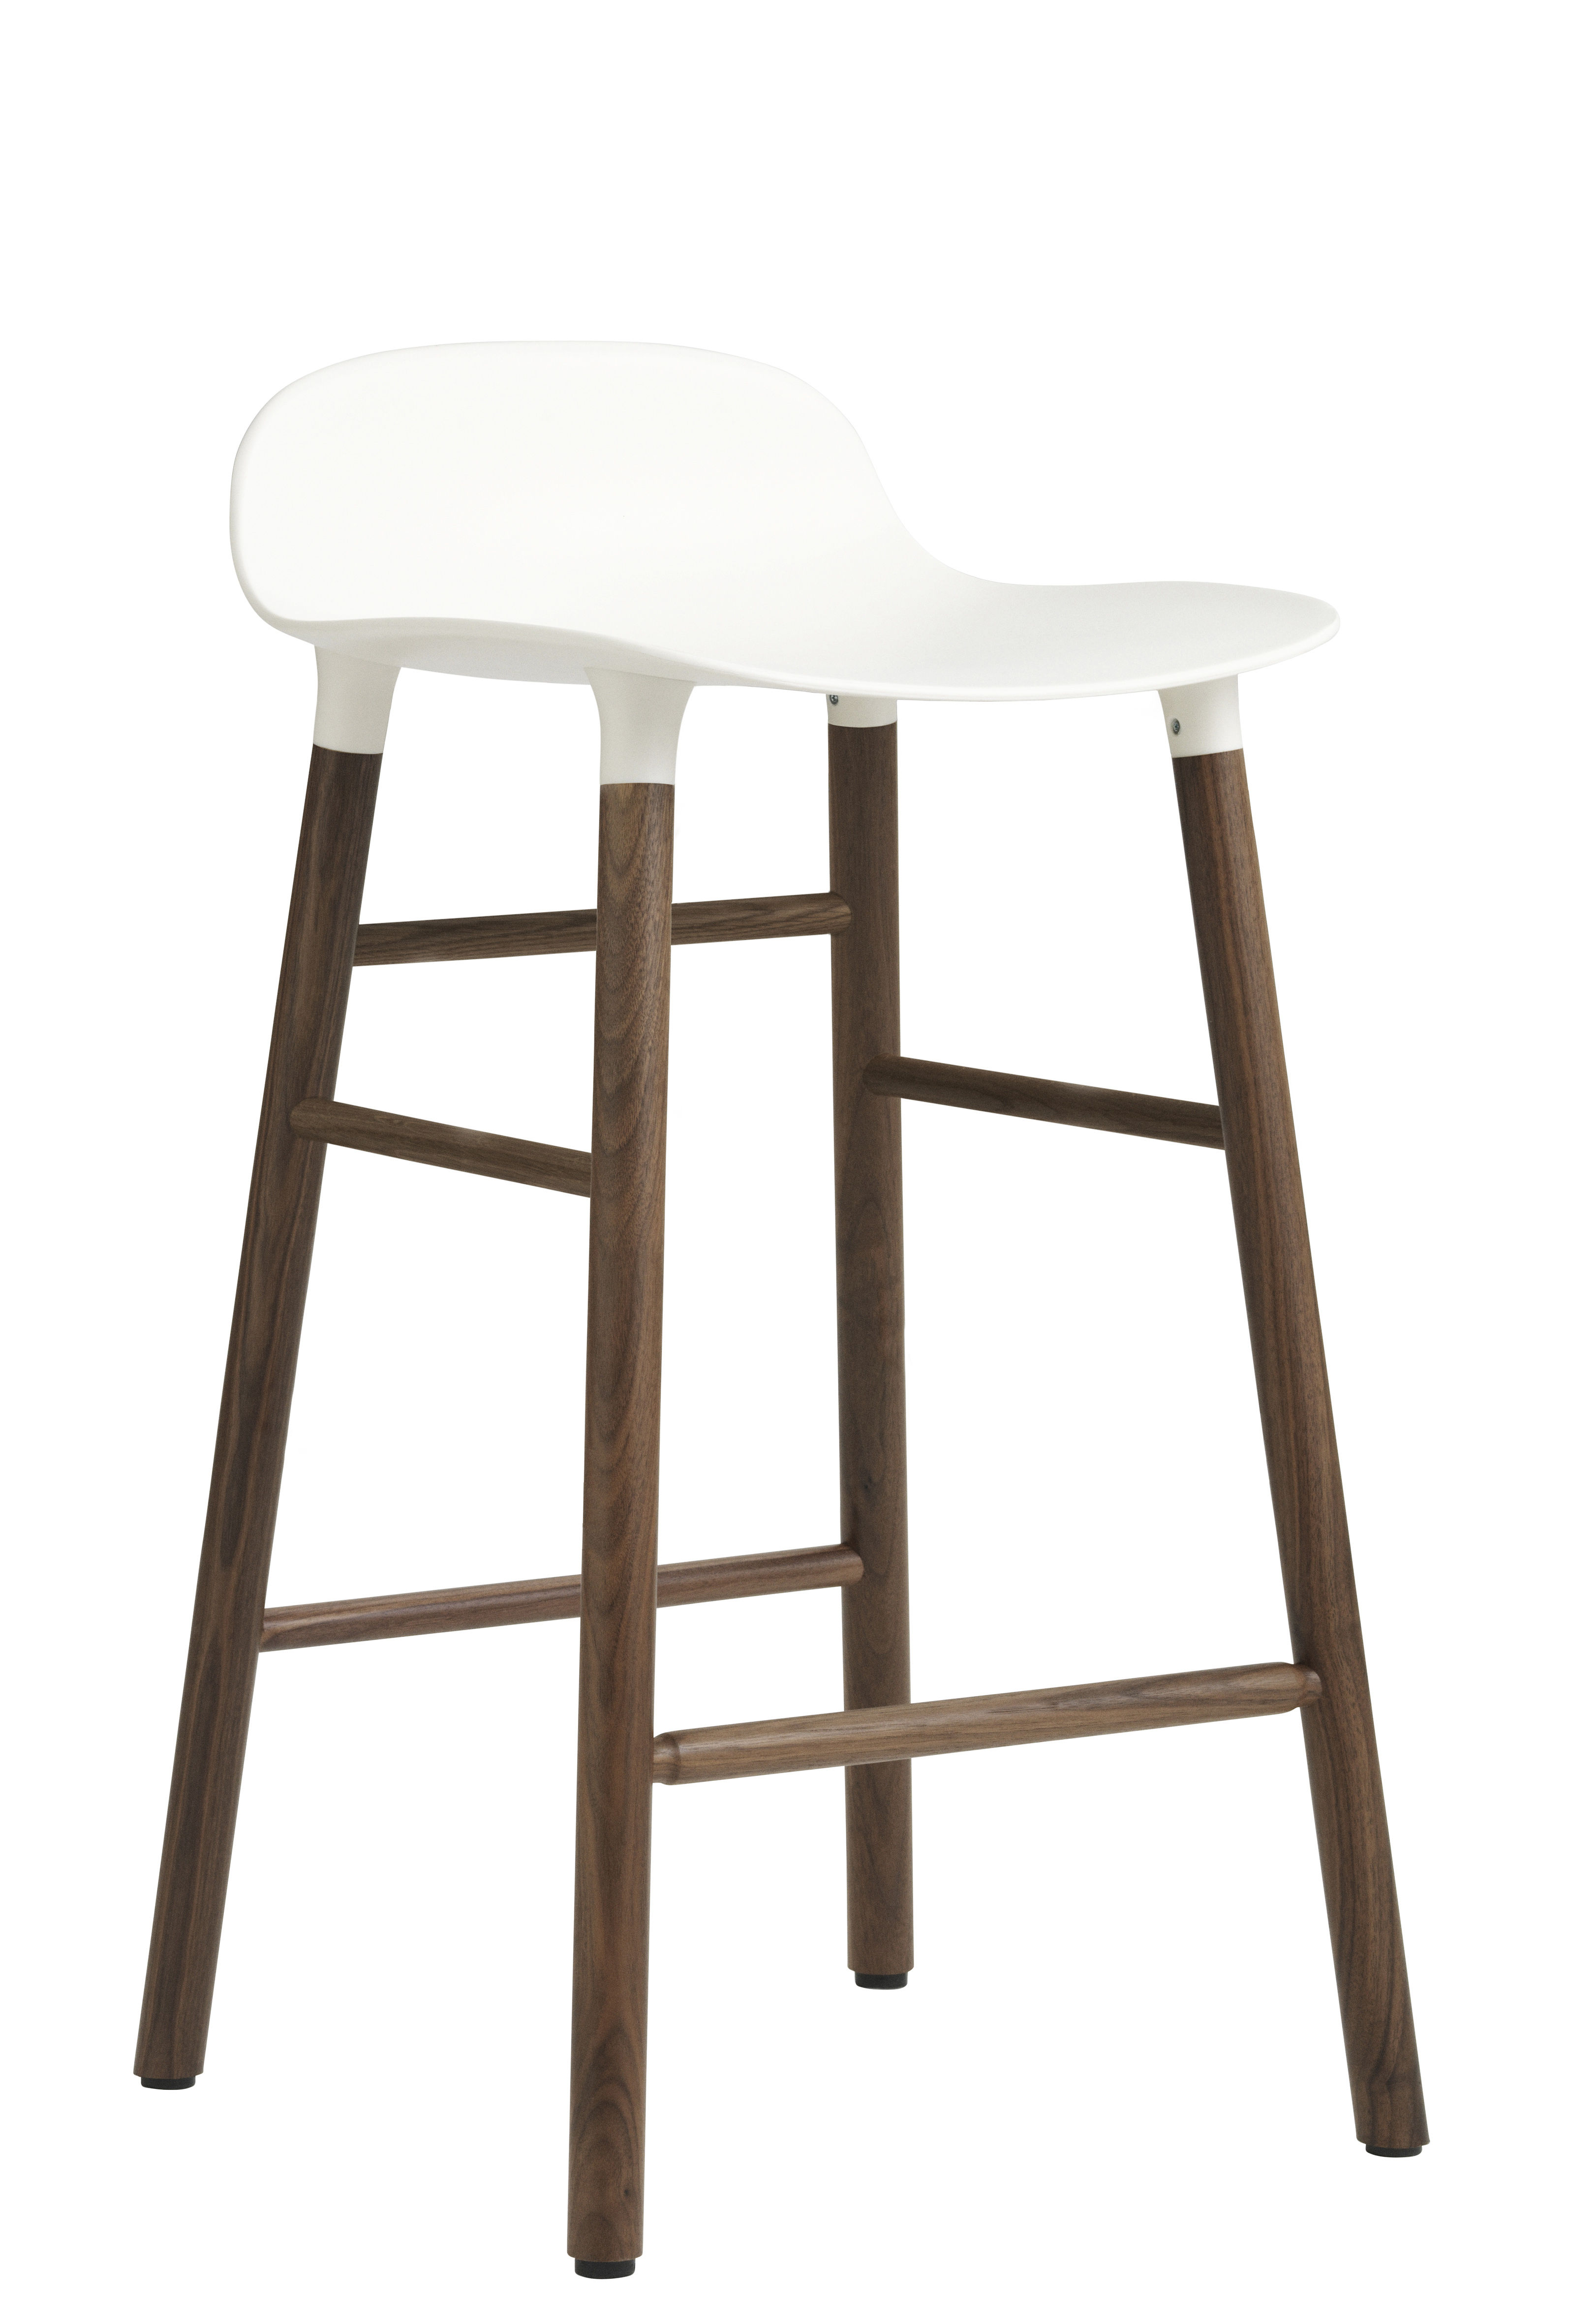 tabouret de bar form h 65 cm pied noyer blanc noyer normann copenhagen. Black Bedroom Furniture Sets. Home Design Ideas